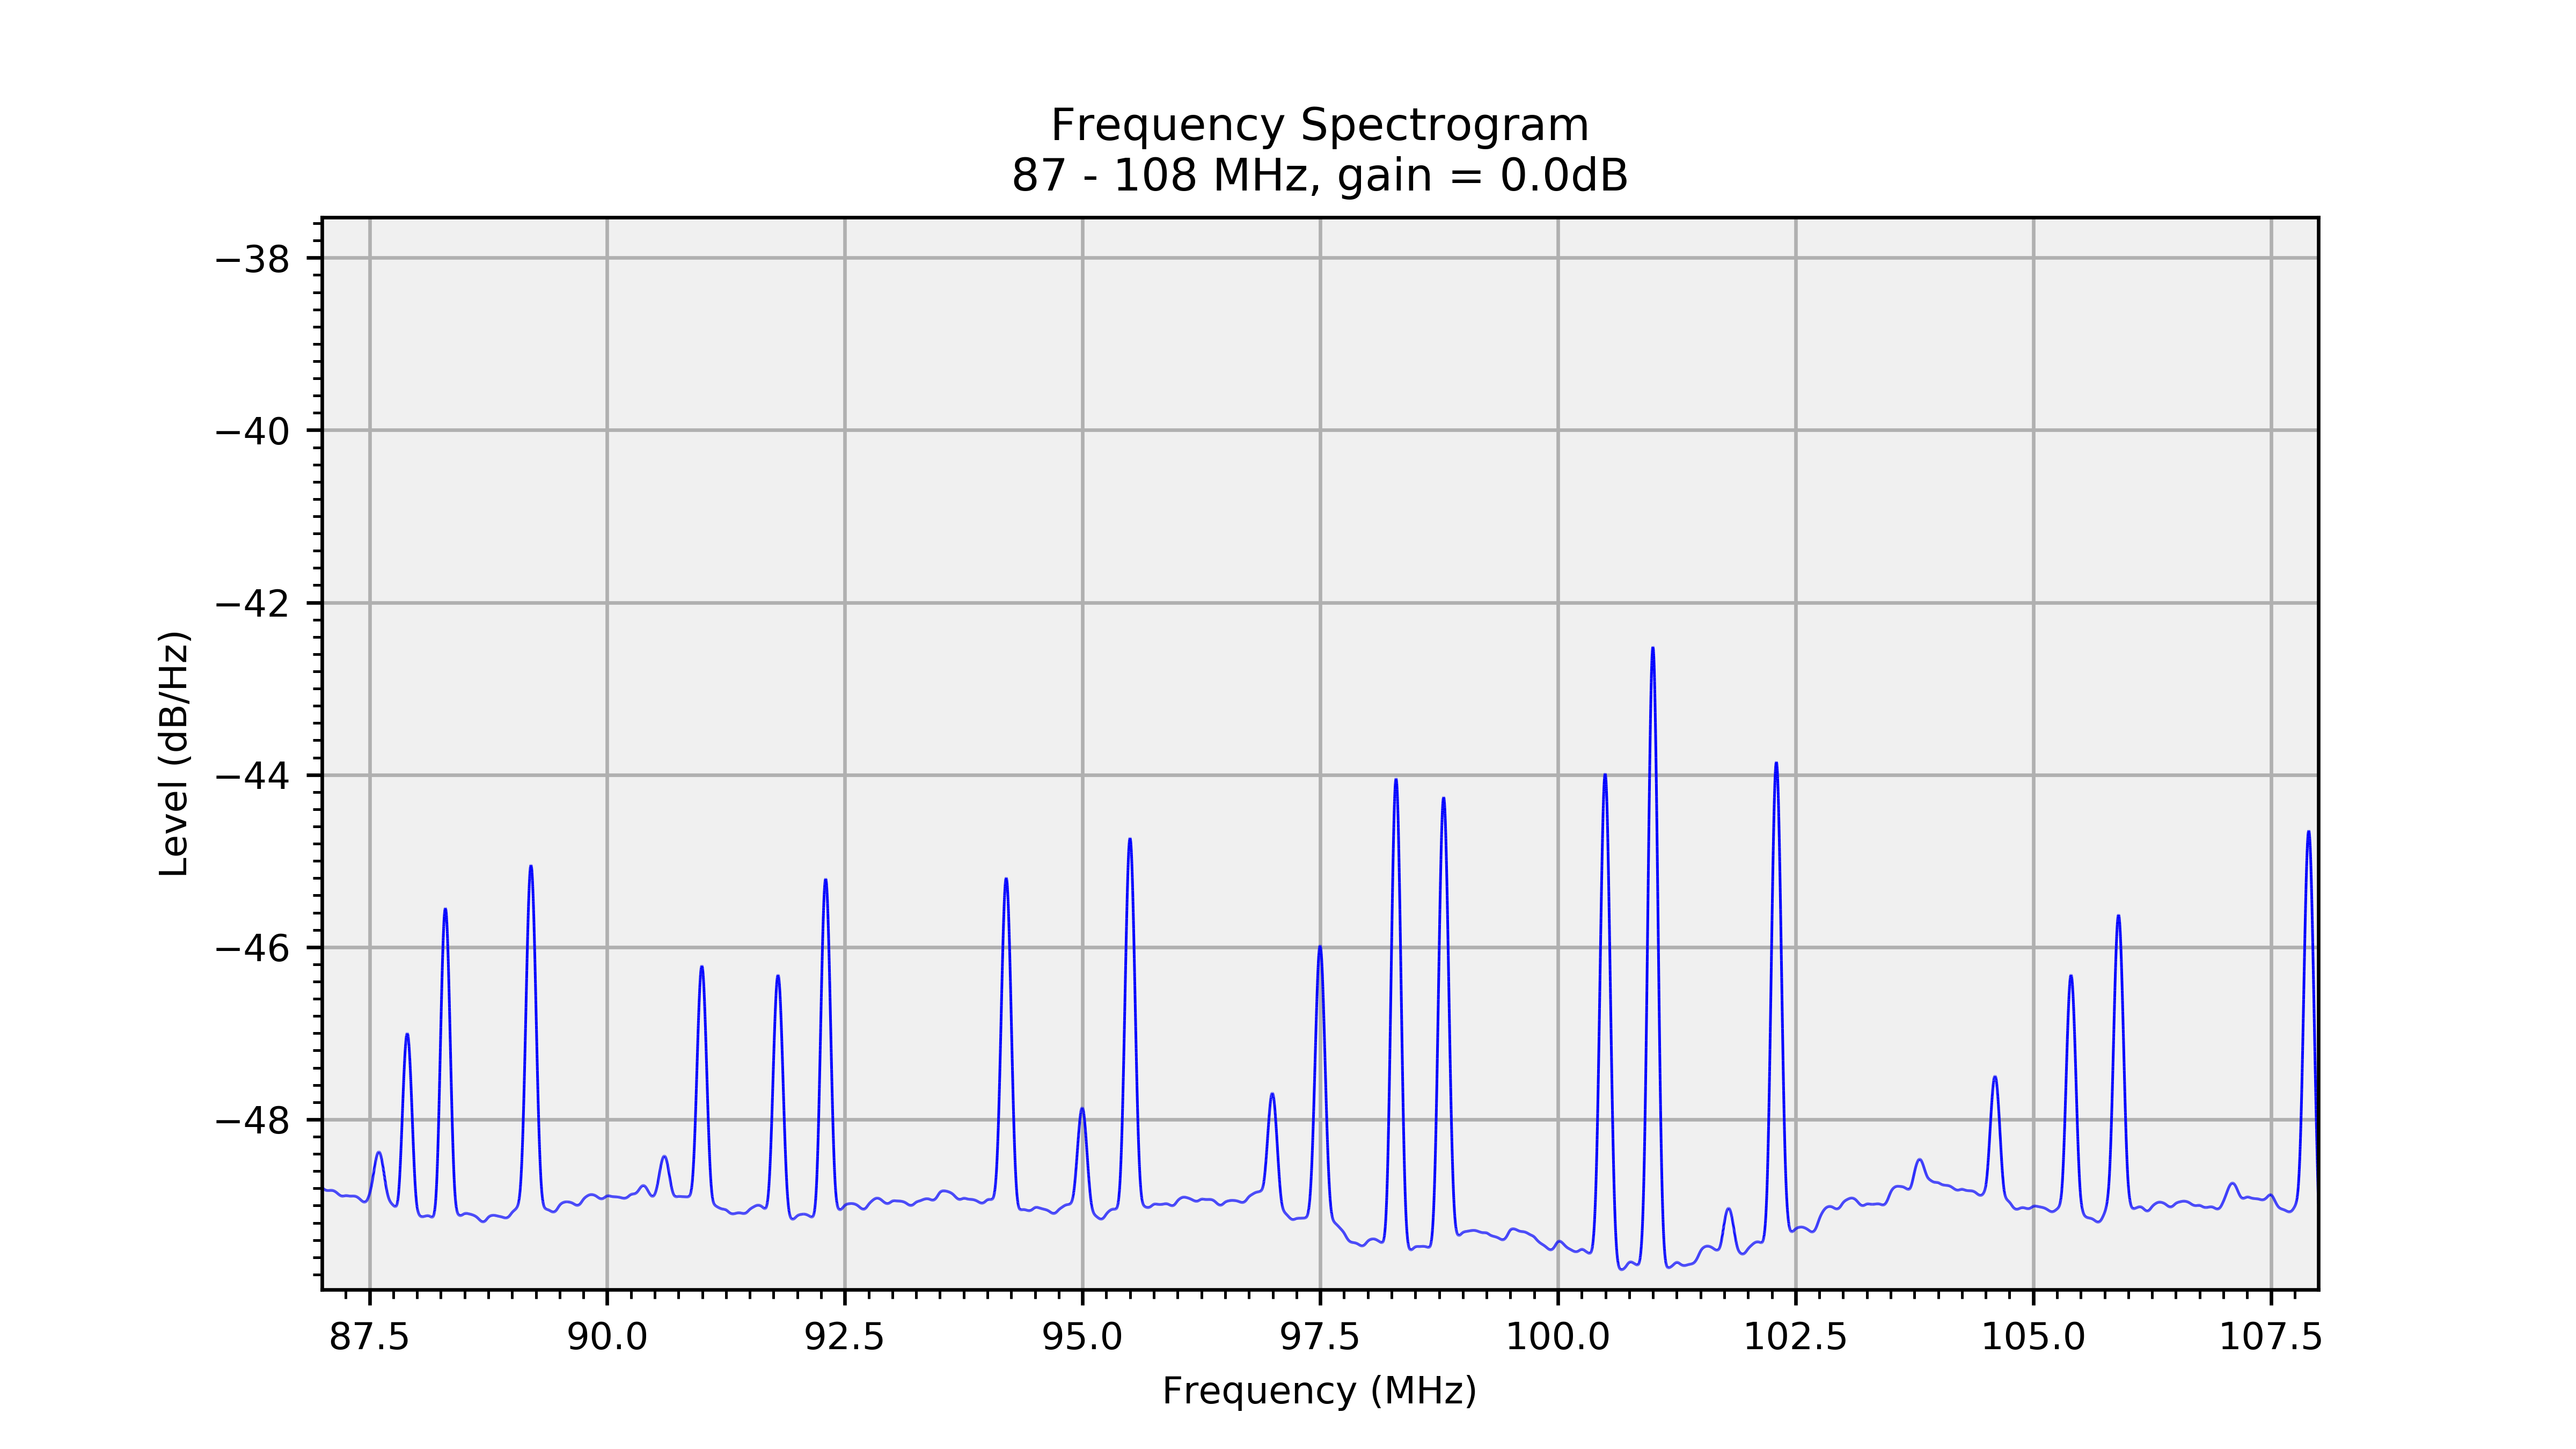 Sampling the signal strength as diagnostic option - feature request